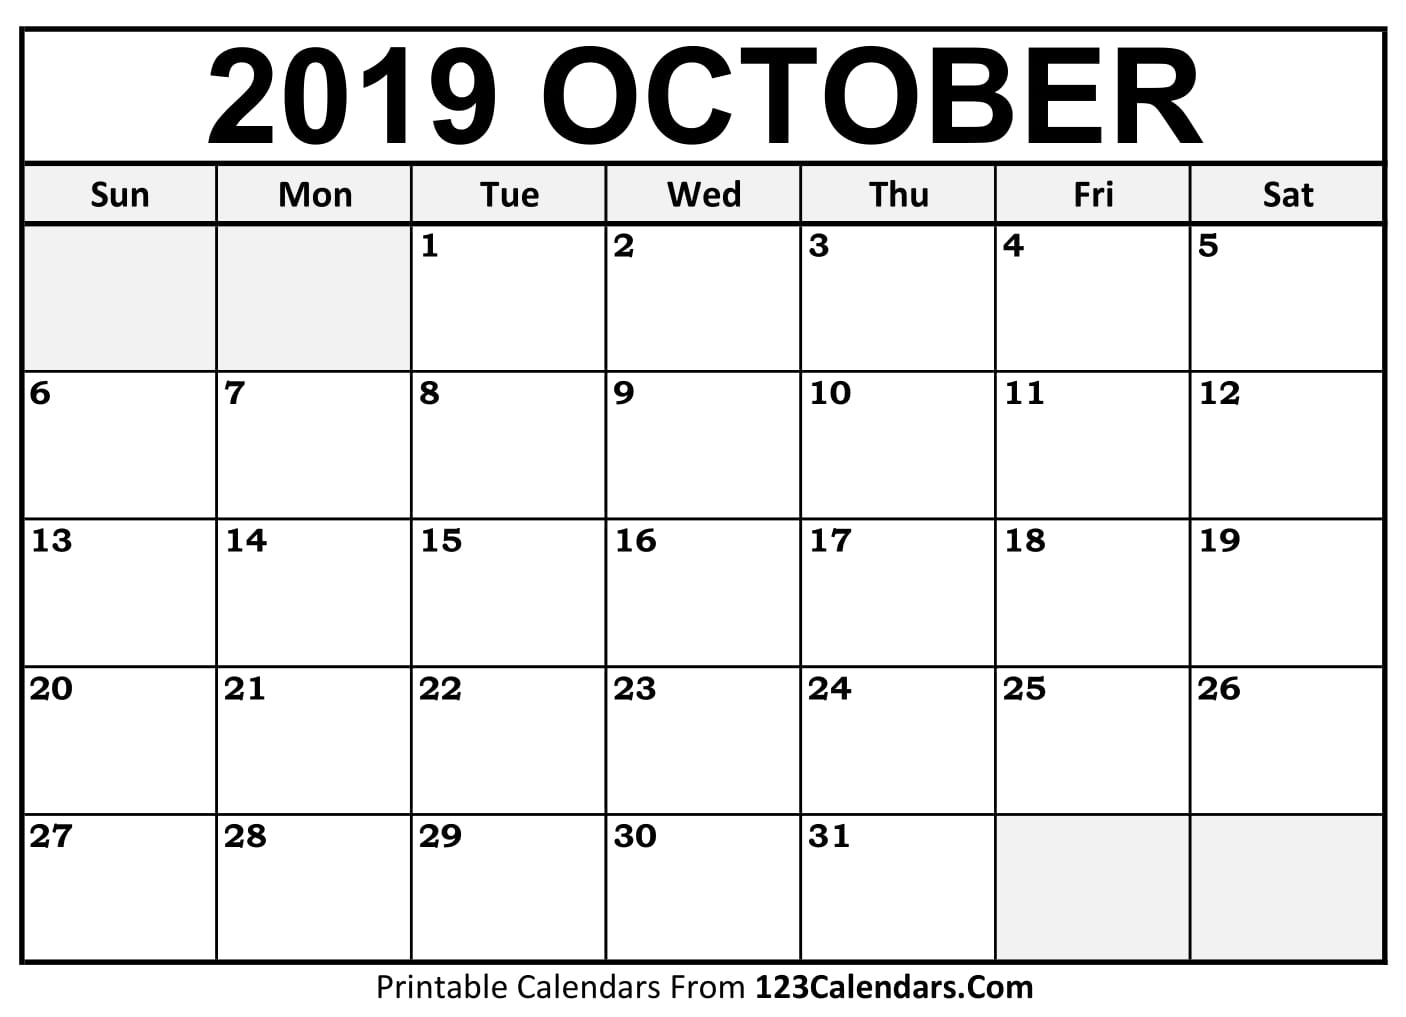 picture about October Calendar Printable identified as Oct 2019 Printable Calendar